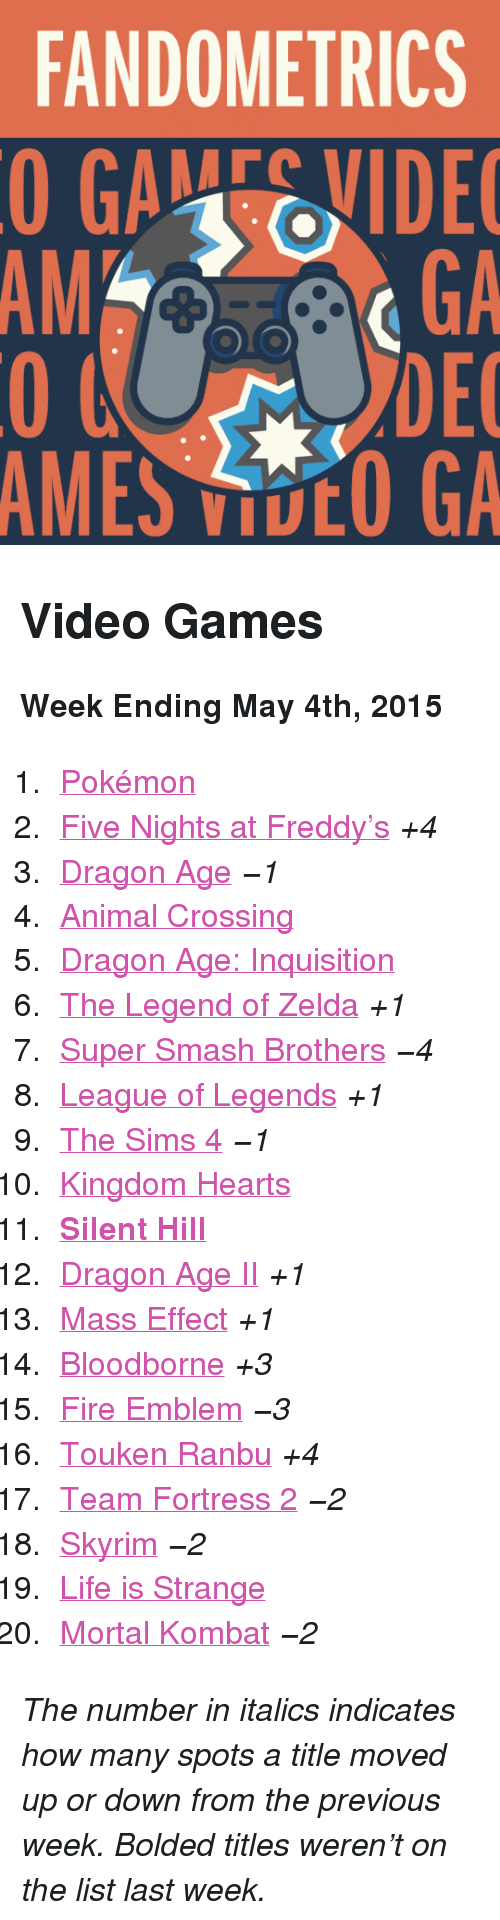 """Fire, League of Legends, and Life: FANDOMETRICS  GAEVIDE  GA  DEC  AMES VOO GA  AM <h2>Video Games</h2><p><b>Week Ending May 4th, 2015</b></p><ol><li><a href=""""http://www.tumblr.com/search/pokemon"""">Pokémon</a></li>  <li><a href=""""http://www.tumblr.com/search/five%20nights%20at%20freddy's"""">Five Nights at Freddy&rsquo;s</a><i>+4</i></li>  <li><a href=""""http://www.tumblr.com/search/dragon%20age"""">Dragon Age</a><i>−1</i></li>  <li><a href=""""http://www.tumblr.com/search/acnl"""">Animal Crossing</a></li>  <li><a href=""""http://www.tumblr.com/search/dragon%20age%20inquisition"""">Dragon Age: Inquisition</a></li>  <li><a href=""""http://www.tumblr.com/search/legend%20of%20zelda"""">The Legend of Zelda</a><i>+1</i></li>  <li><a href=""""http://www.tumblr.com/search/super%20smash%20bros"""">Super Smash Brothers</a><i>−4</i></li>  <li><a href=""""http://www.tumblr.com/search/league%20of%20legends"""">League of Legends</a><i>+1</i></li>  <li><a href=""""http://www.tumblr.com/search/sims%204"""">The Sims 4</a><i>−1</i></li>  <li><a href=""""http://www.tumblr.com/search/kingdom%20hearts"""">Kingdom Hearts</a></li>  <li><a href=""""http://www.tumblr.com/search/silent%20hill""""><b>Silent Hill</b></a></li>  <li><a href=""""http://www.tumblr.com/search/dragon%20age%202"""">Dragon Age II</a><i>+1</i></li>  <li><a href=""""http://www.tumblr.com/search/mass%20effect"""">Mass Effect</a><i>+1</i></li>  <li><a href=""""http://www.tumblr.com/search/bloodborne"""">Bloodborne</a><i>+3</i></li>  <li><a href=""""http://www.tumblr.com/search/fire%20emblem"""">Fire Emblem</a><i>−3</i></li>  <li><a href=""""http://www.tumblr.com/search/touken%20ranbu"""">Touken Ranbu</a><i>+4</i></li>  <li><a href=""""http://www.tumblr.com/search/tf2"""">Team Fortress 2</a><i>−2</i></li>  <li><a href=""""http://www.tumblr.com/search/skyrim"""">Skyrim</a><i>−2</i></li>  <li><a href=""""http://www.tumblr.com/search/life%20is%20strange"""">Life is Strange</a></li>  <li><a href=""""http://www.tumblr.com/search/mortal%20kombat"""">Mortal Kombat</a><i>−2</i></li></ol><p><i>The number in italics indicates how many spots """